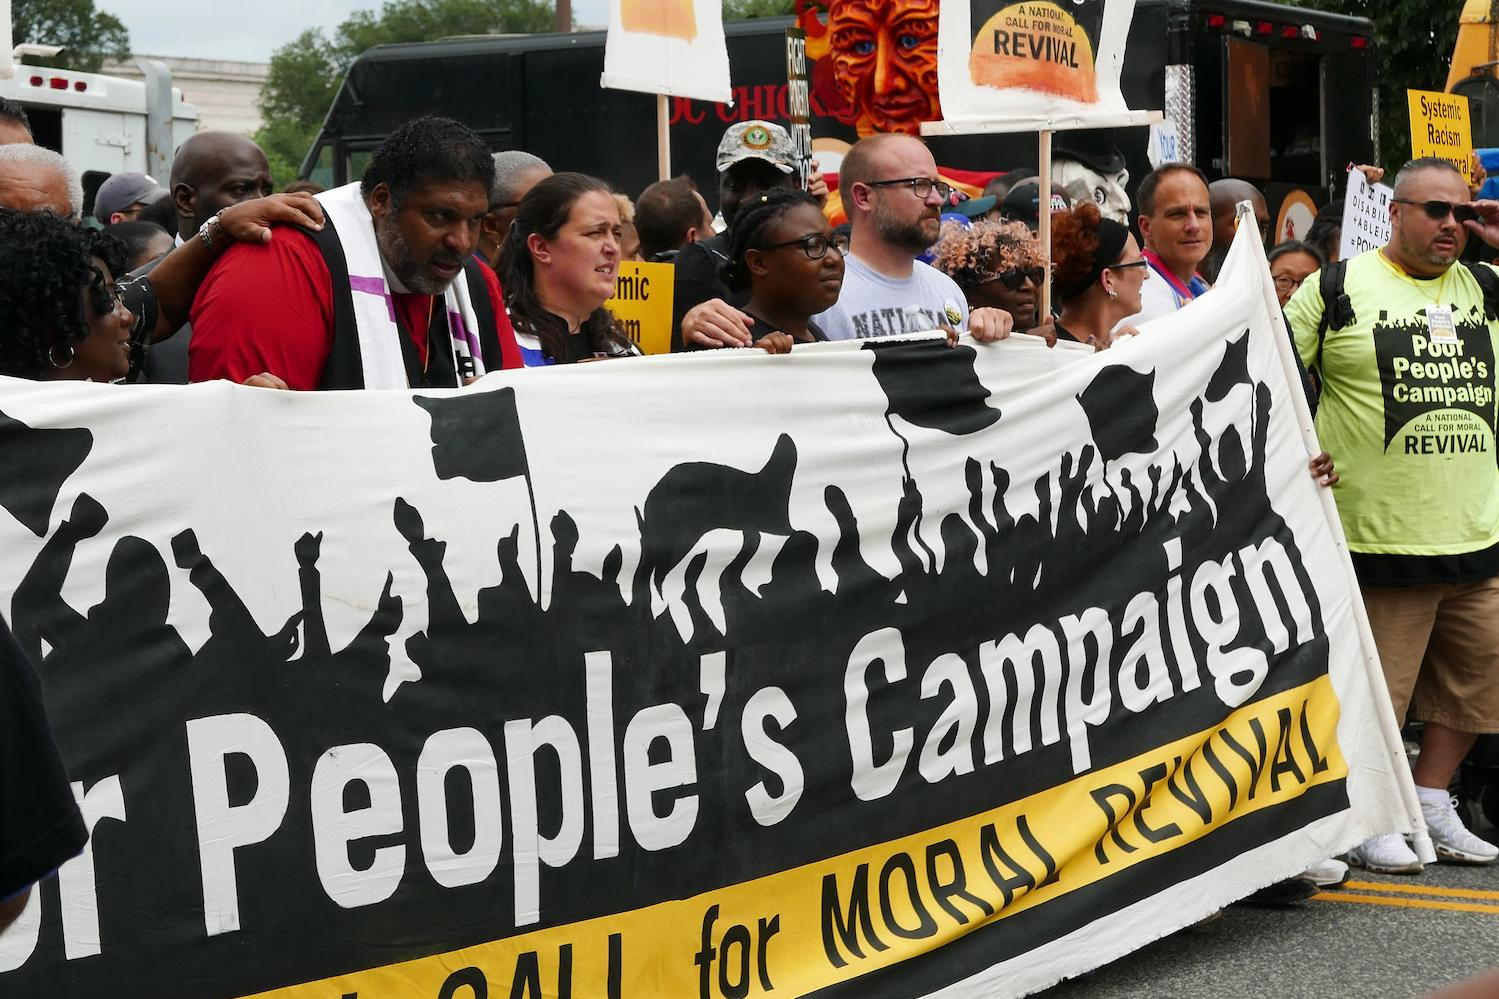 Poor Peoples Campaign end systemic racism and poverty